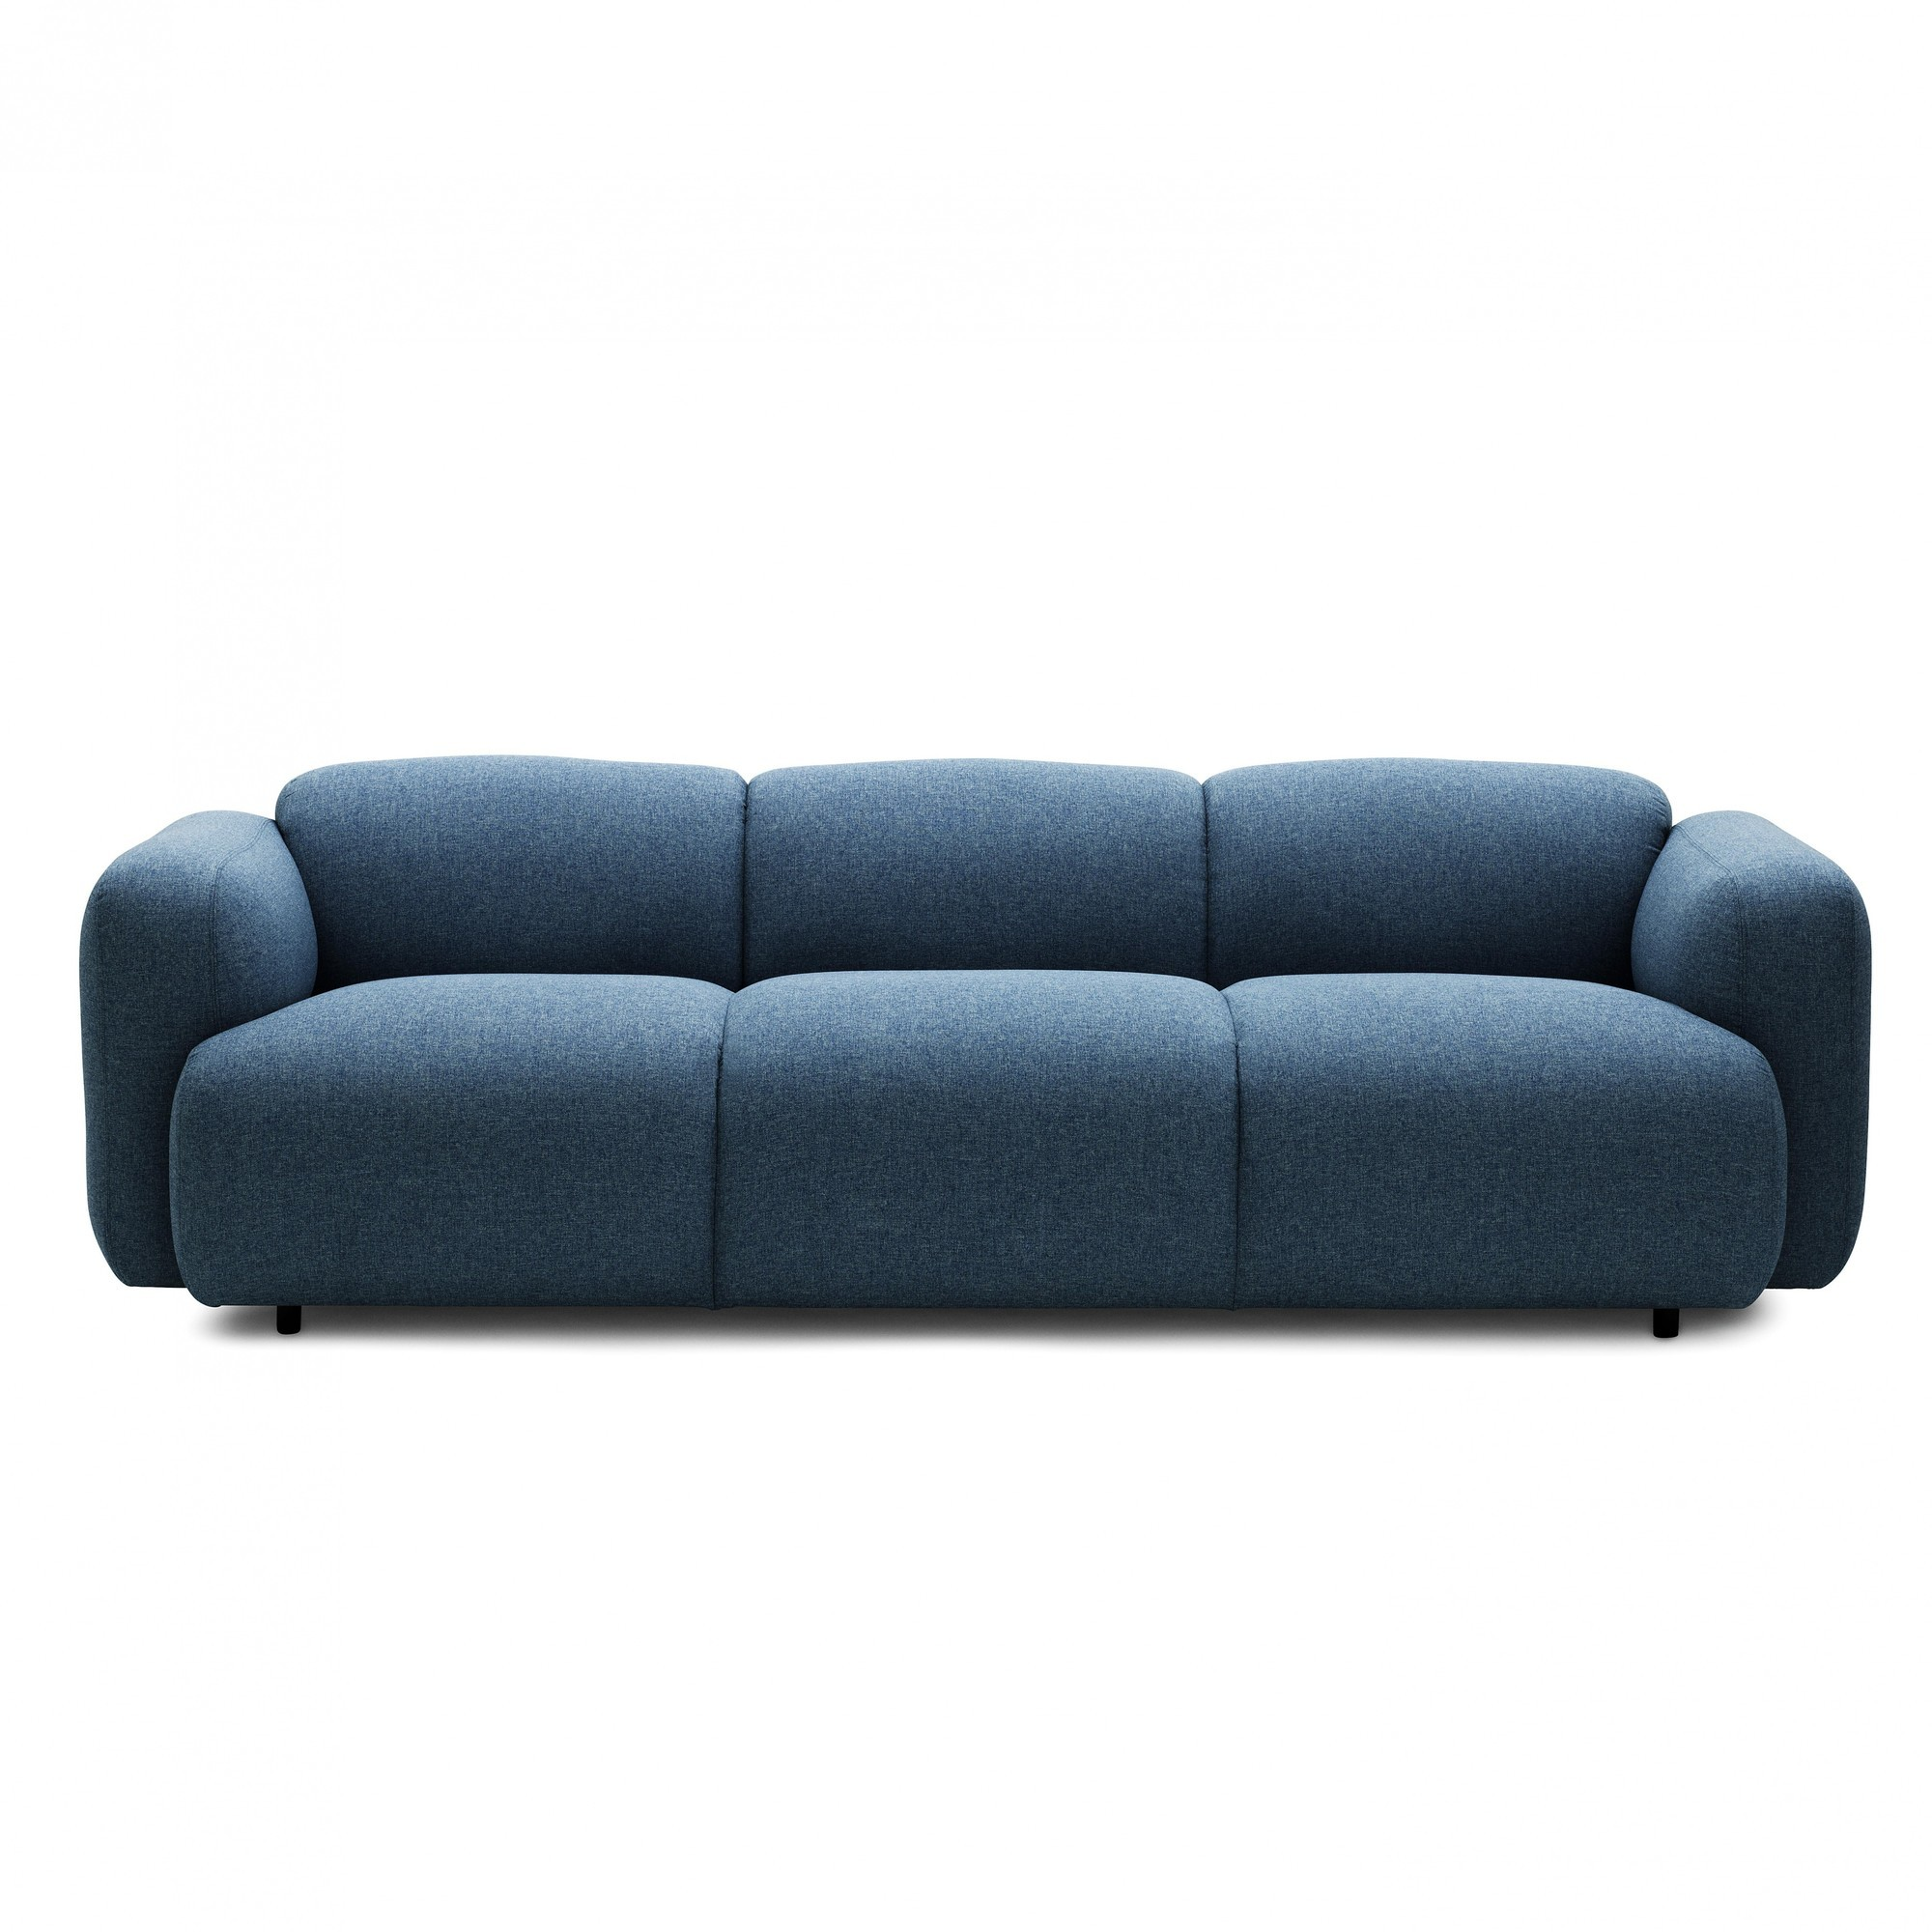 Big Sofa Petrol Swell Sofa 3 Seater